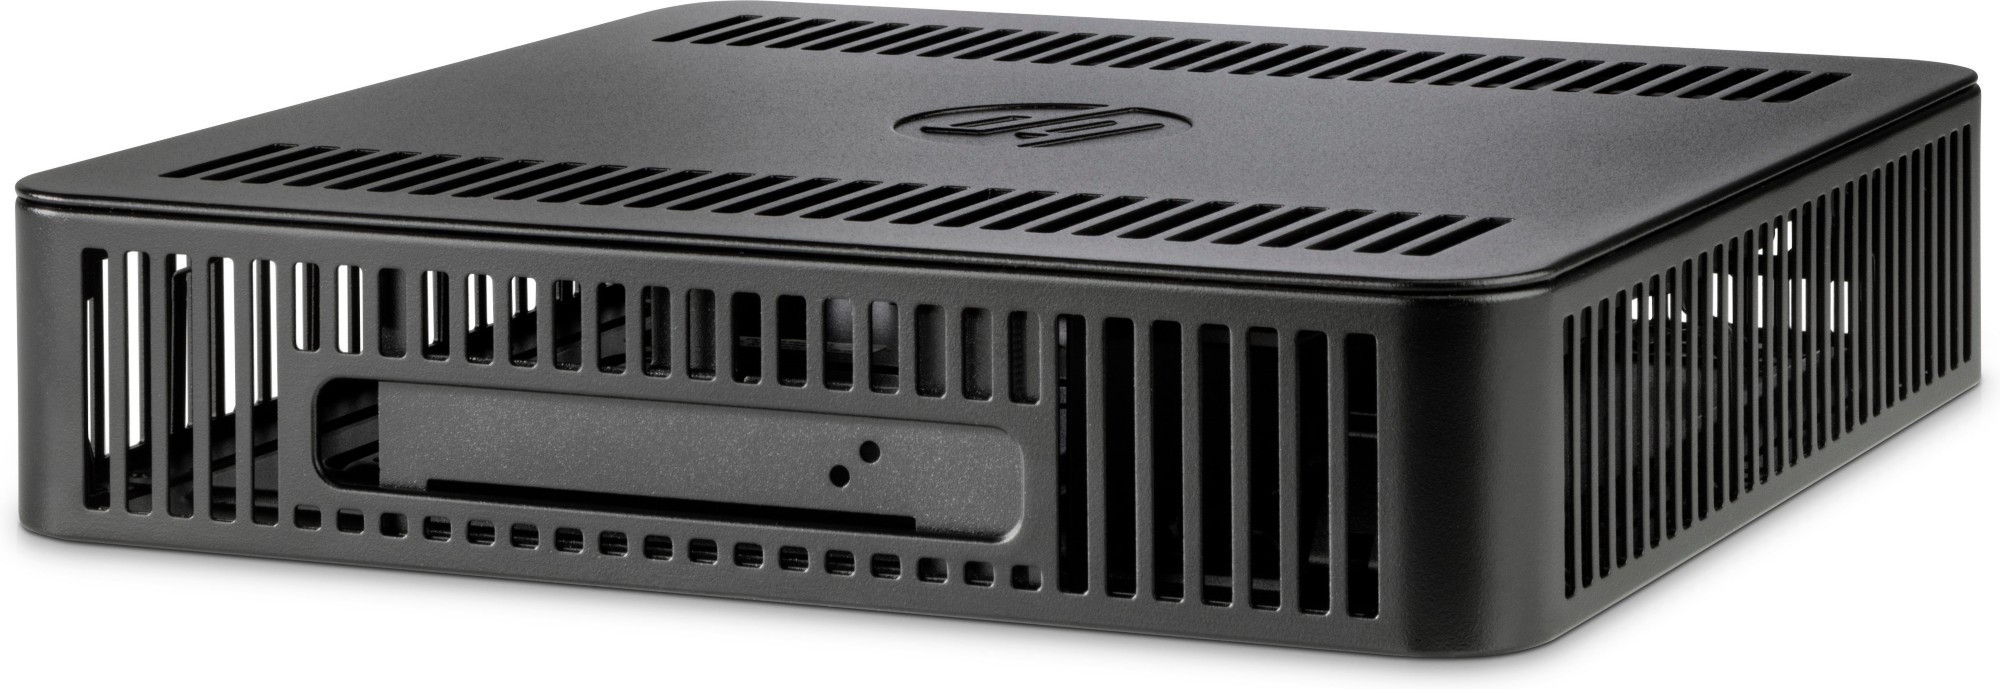 HP Desktop Mini LockBox v2 Tower Black